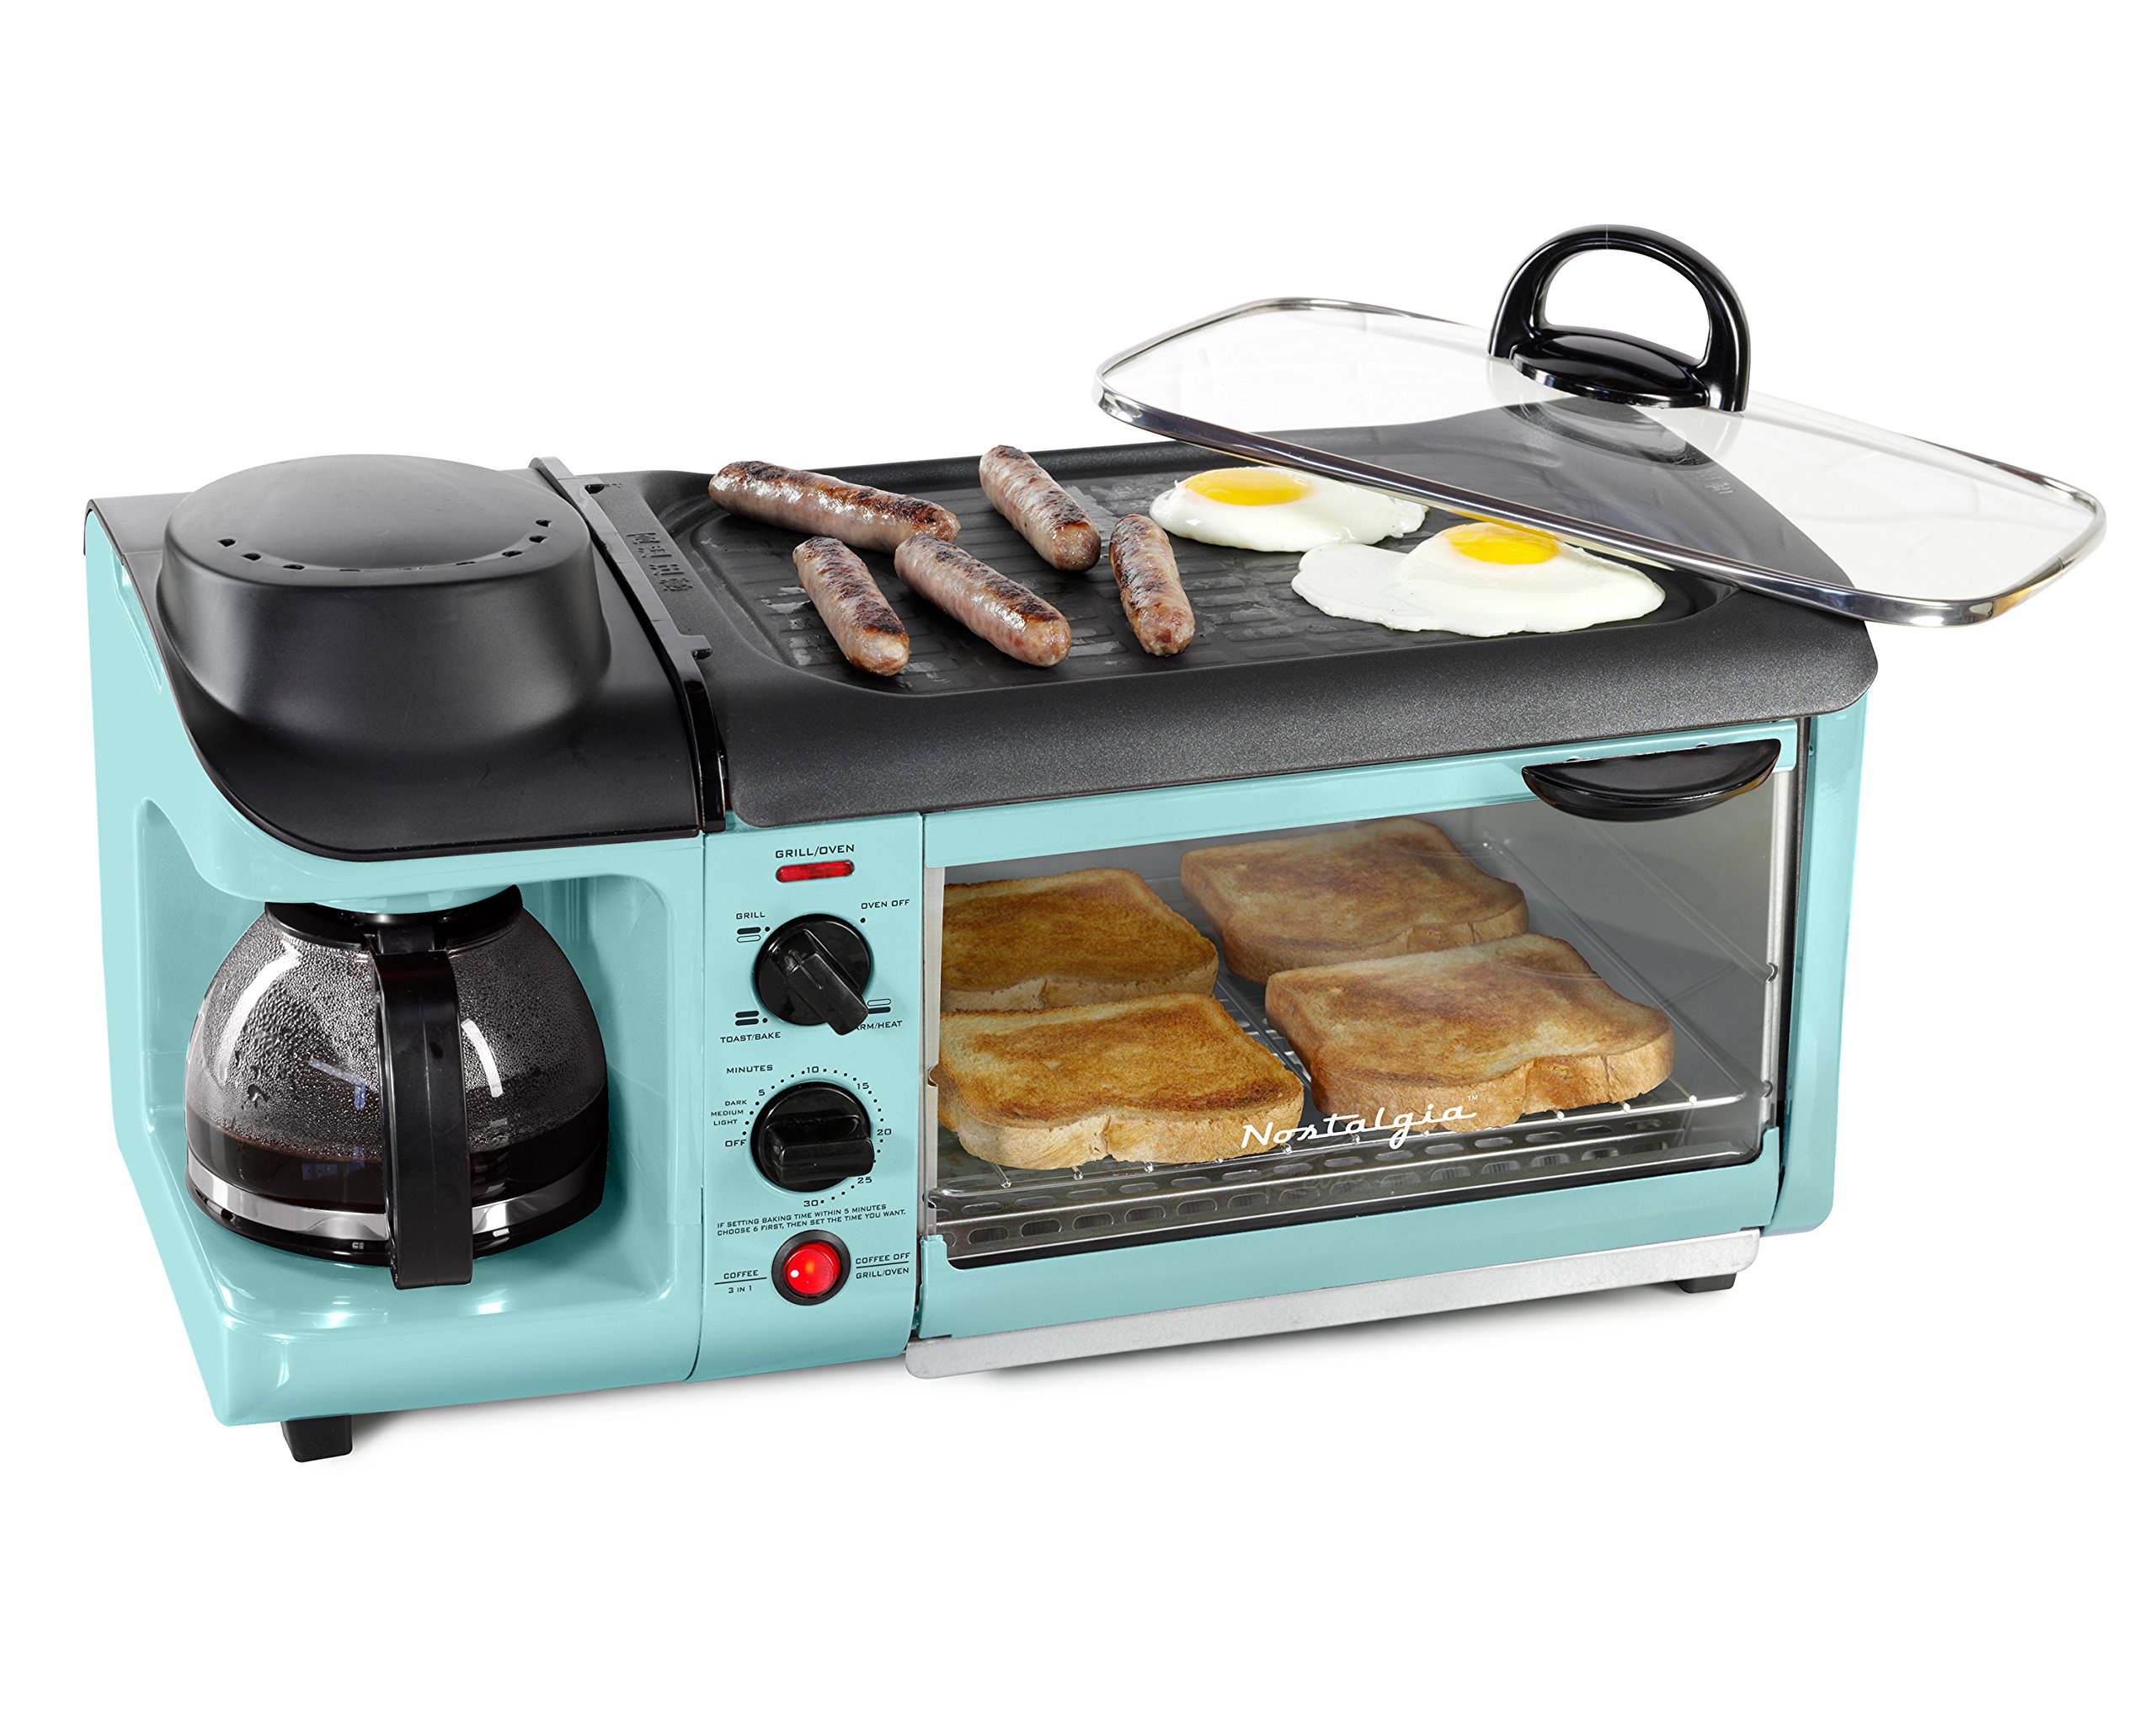 Nostalgia BSET300AQ Retro 3-in-1 Family Size Breakfast Station – Aqua Blue